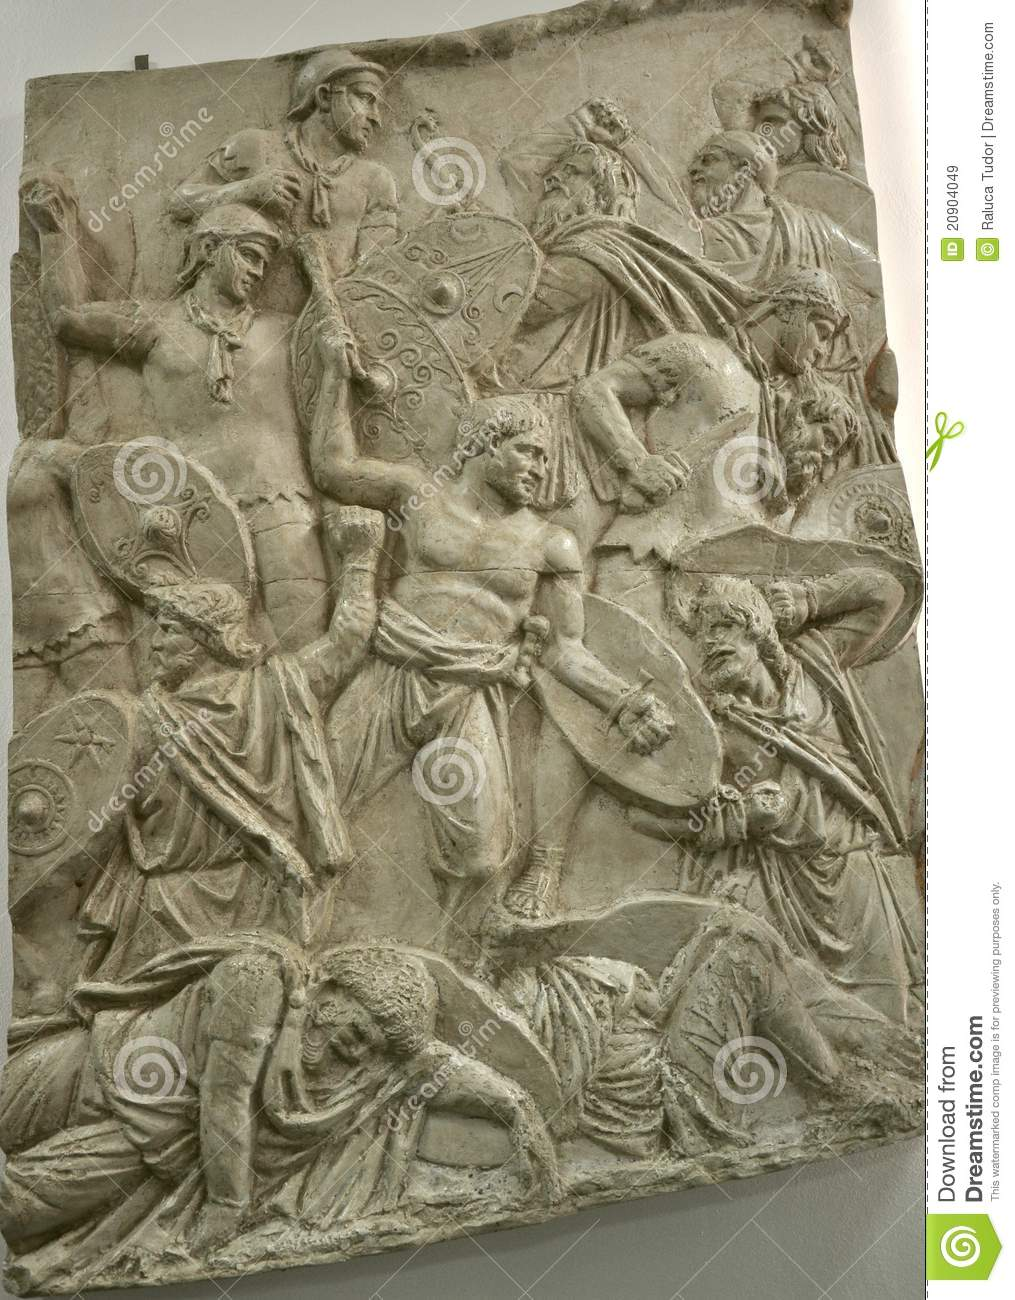 Ancient roman stone carving royalty free stock images